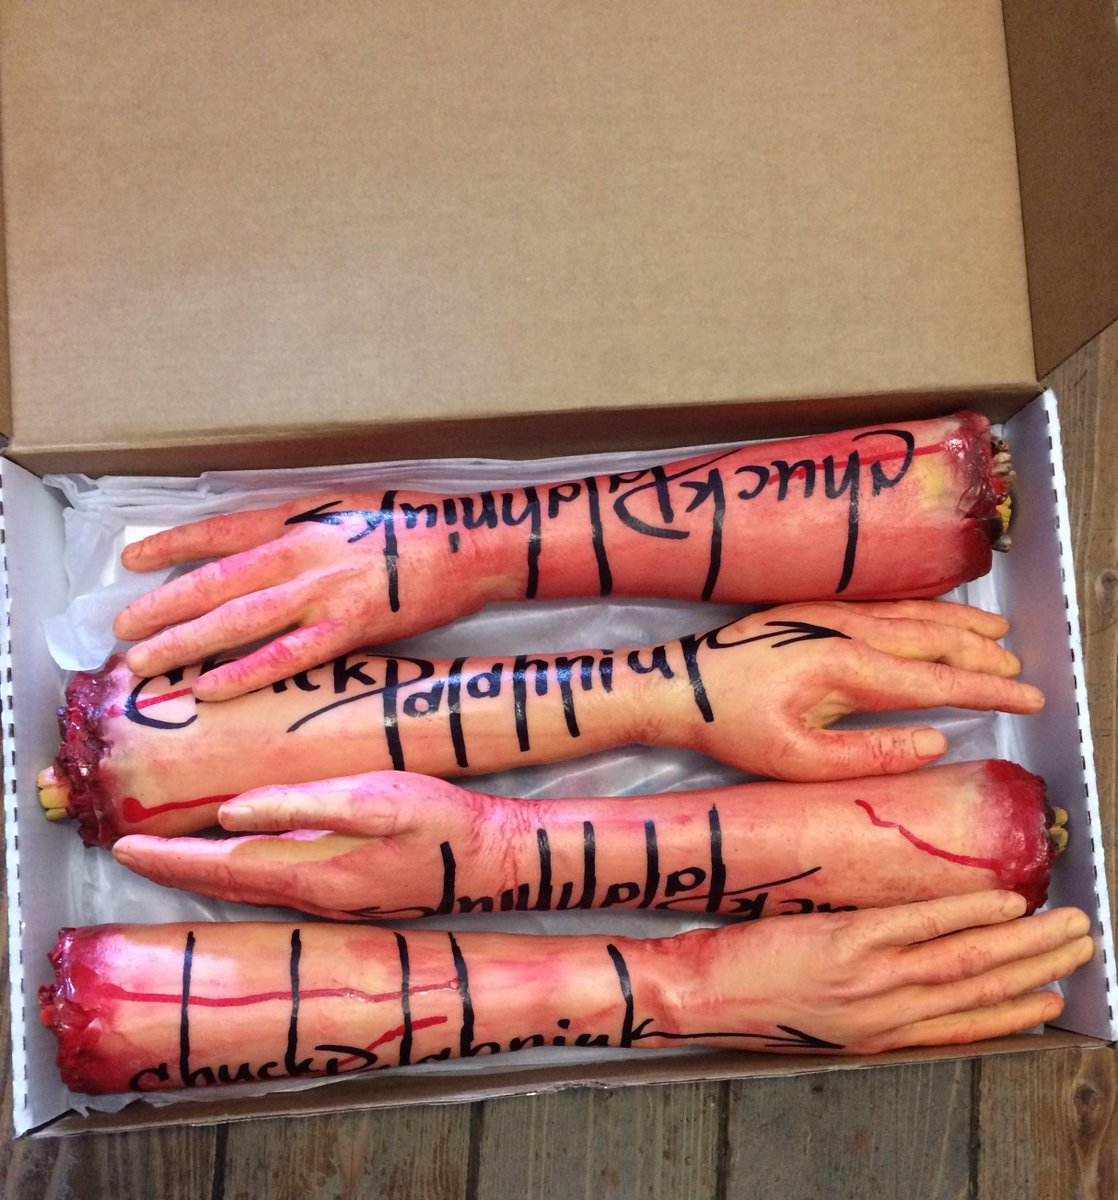 Want to win a disembodied arm or poster signed by @chuckpalahniuk? Here's how! http://t.co/xz5u649XDJ http://t.co/hoYjlgg5Jc